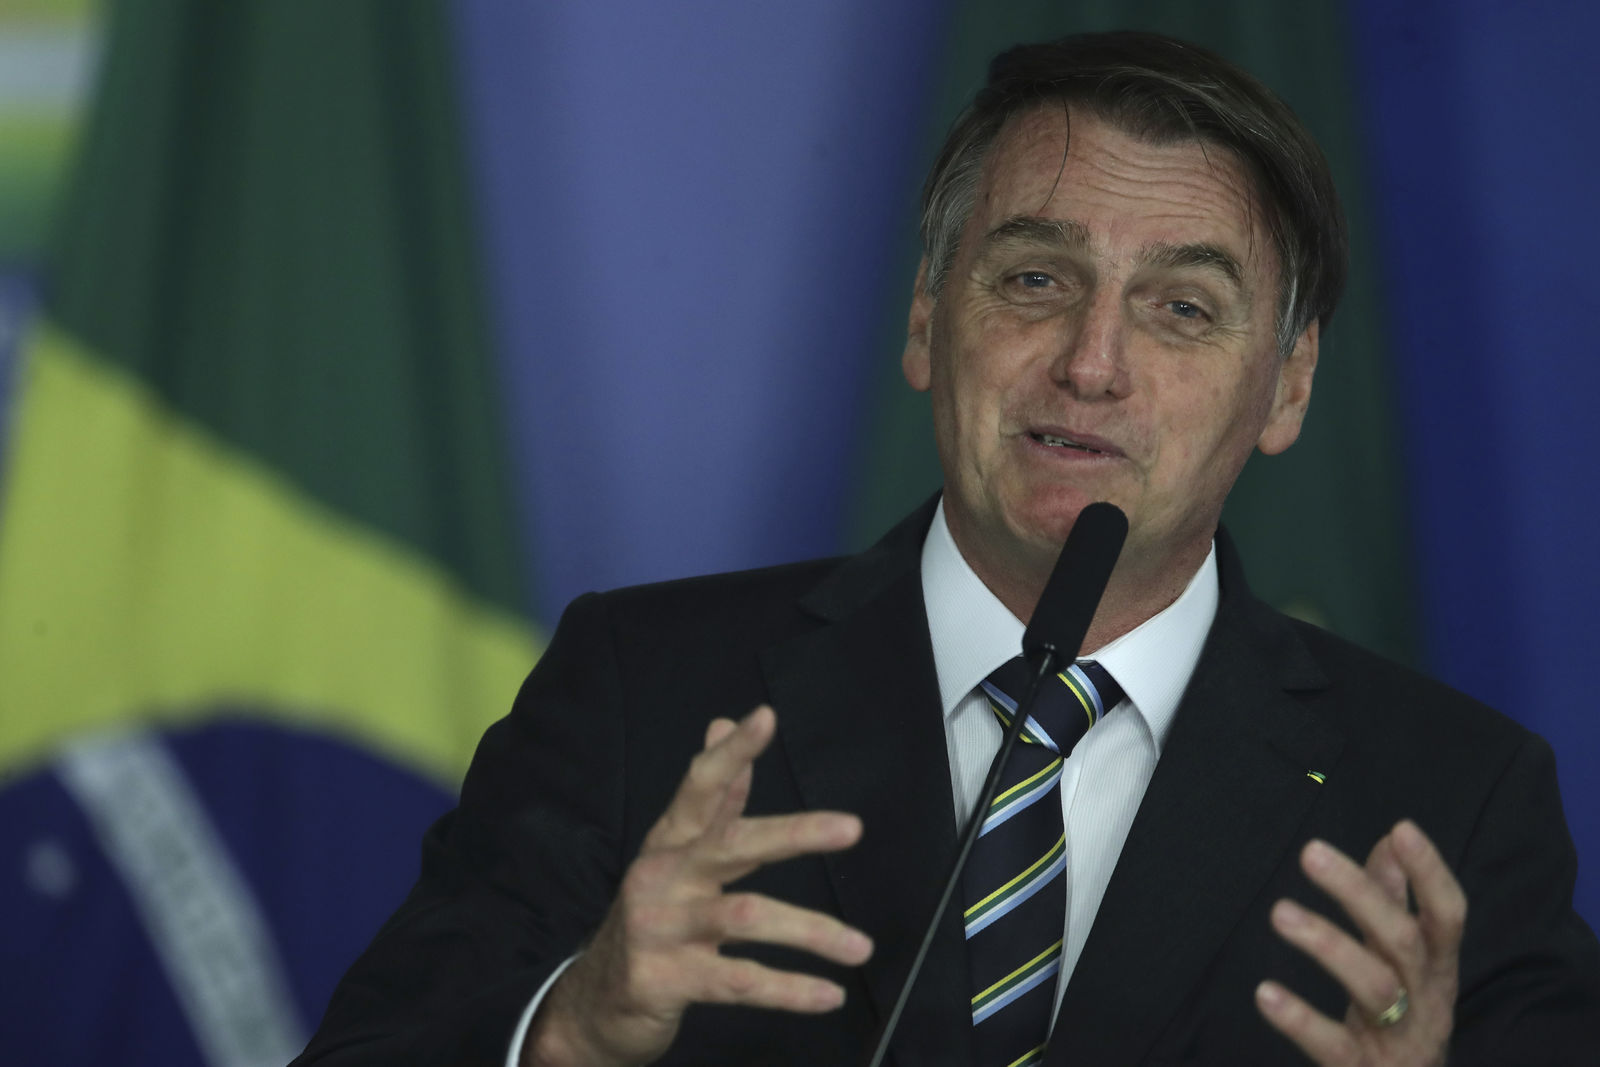 Brazil's President Jair Bolsonaro speaks during an event at the Planalto Presidential Palace, in Brasilia, Brazil, Tuesday, April 30, 2019. Bolsonaro convened a meeting of top ministers to discuss the ongoing situation in Venezuela. (AP Photo/Eraldo Peres)